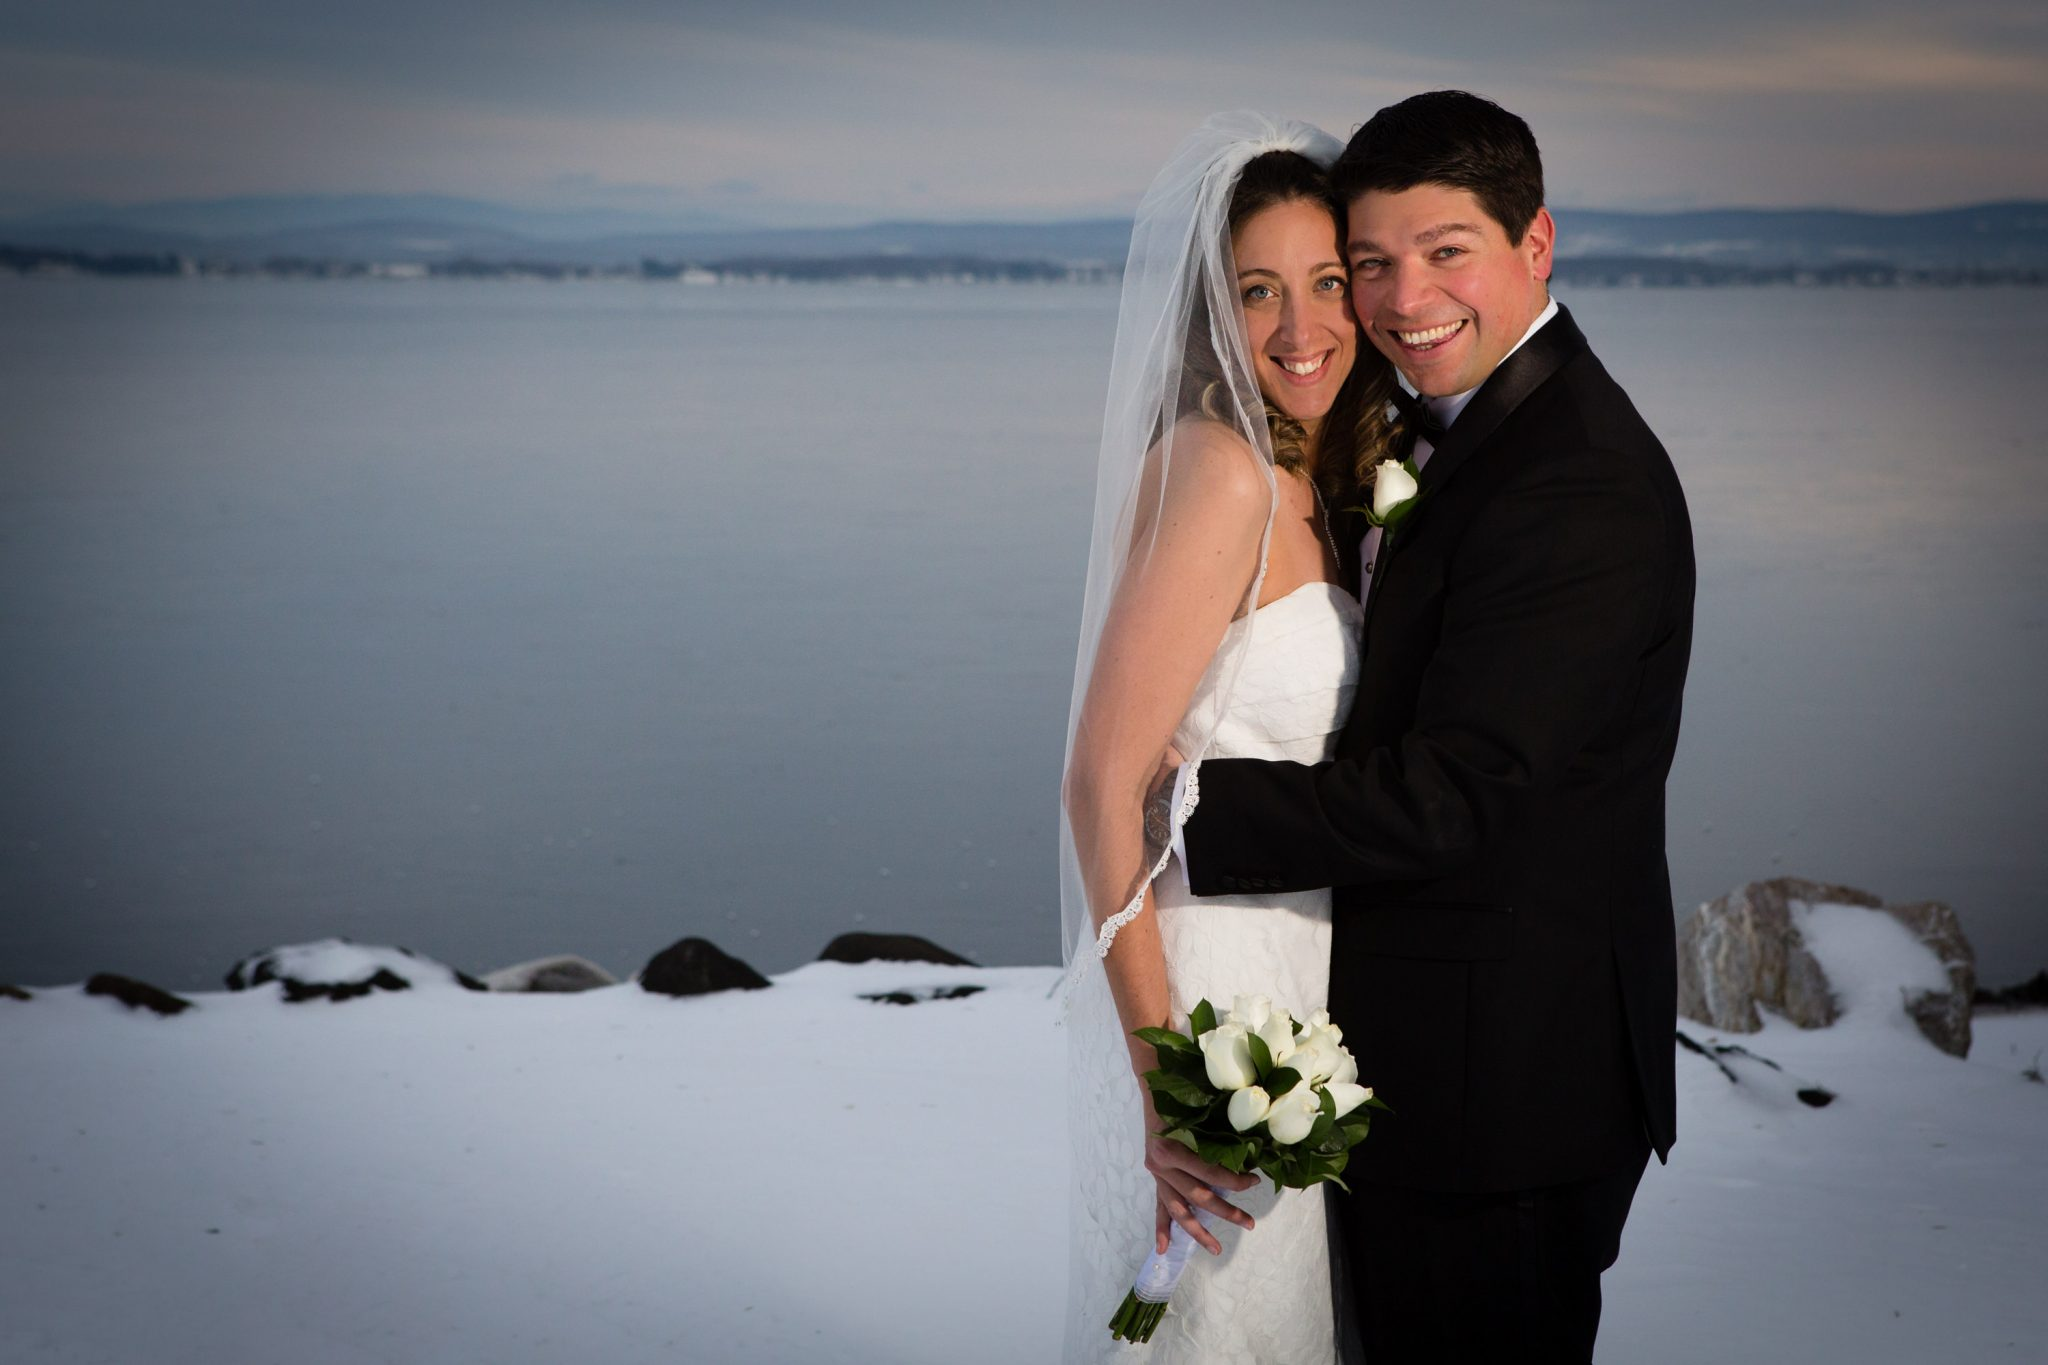 winter wedding outdoor portrait on lake champlain in vermont